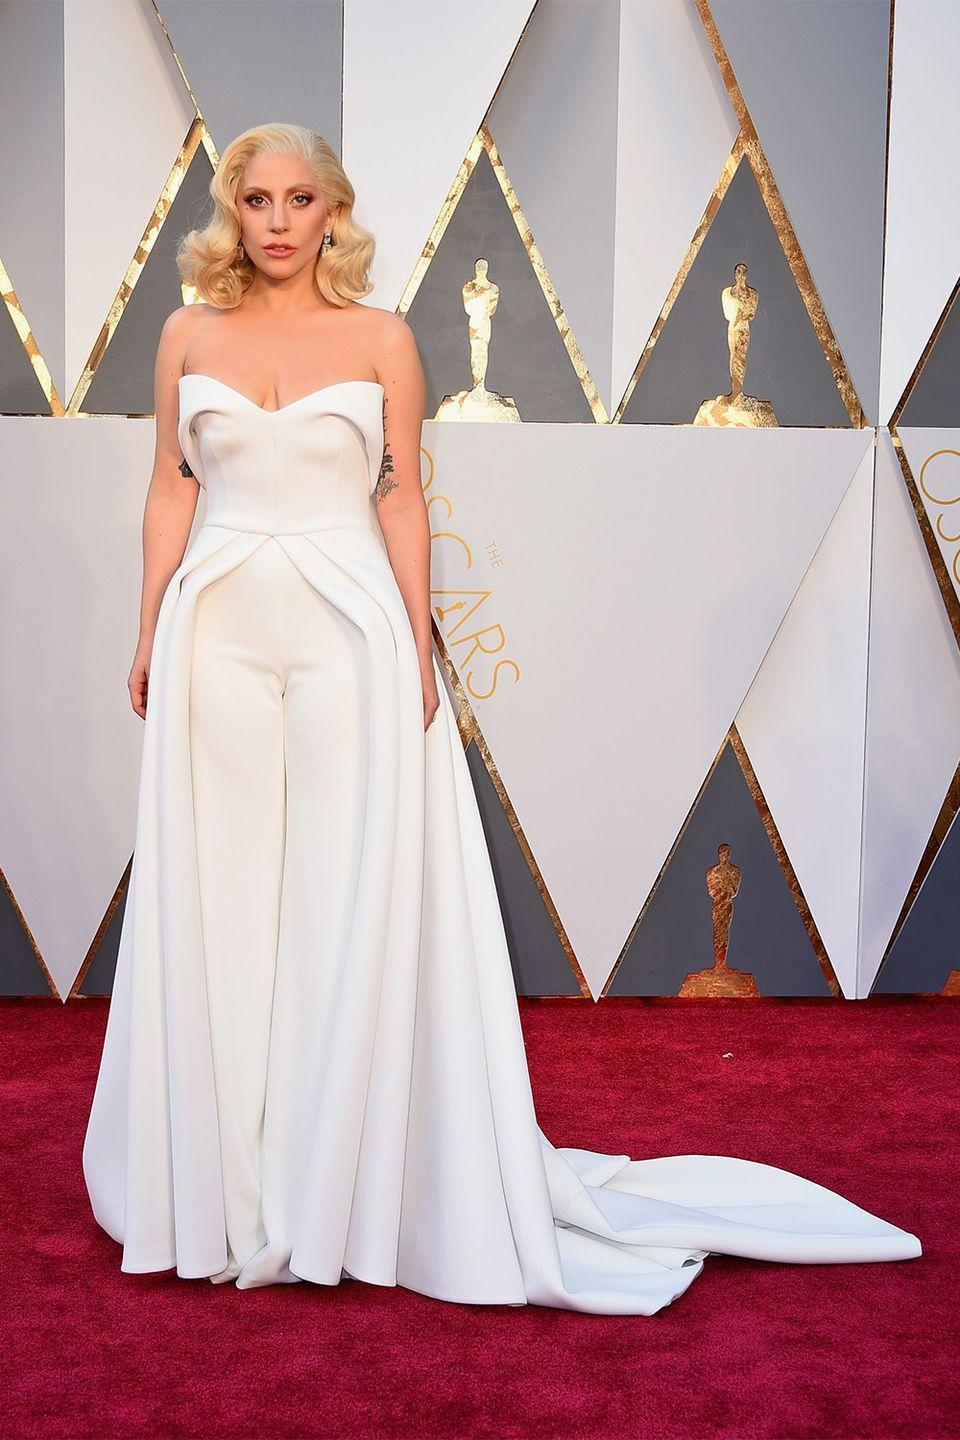 <p>It's not often that you see a jumpsuit at the Academy Awards, but if anyone can get away with it, it's certainly rule breaker Lady Gaga. Upon first glance her Brandon Maxwell-designed jumpsuit still had the look of a haute couture gown. </p>